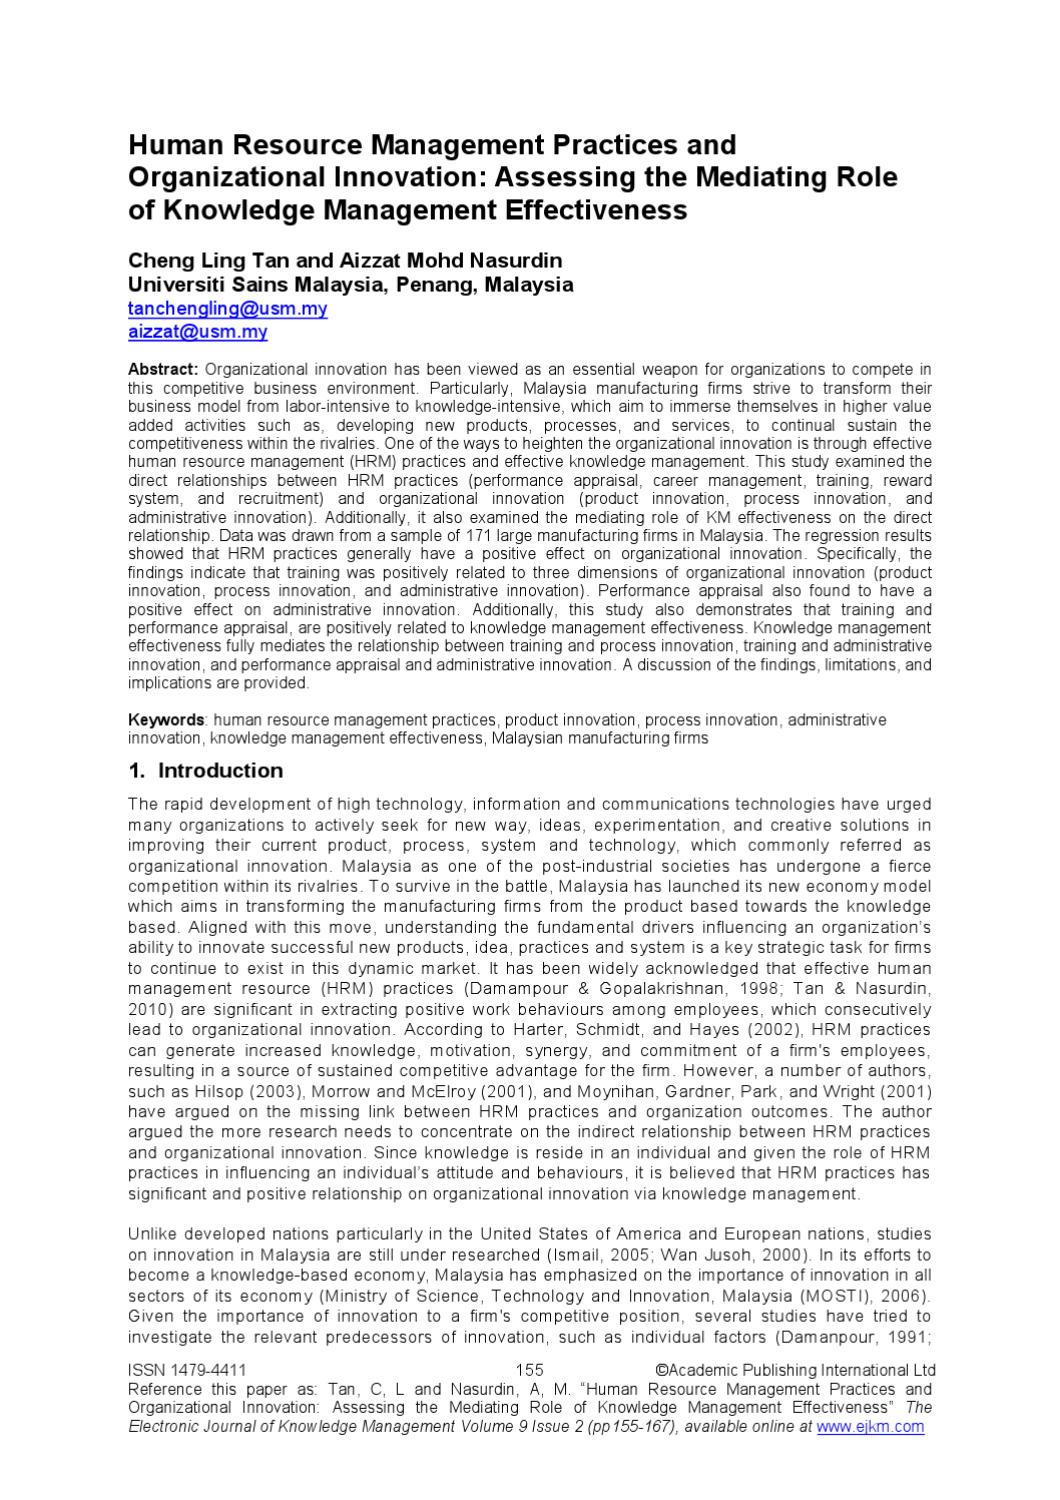 relationship between human resource management practices and organizational performance Cep discussion paper no 624 march 2004 do organizational climate a nd strategic orientation moderate the relationship between human resource management practices a nd.